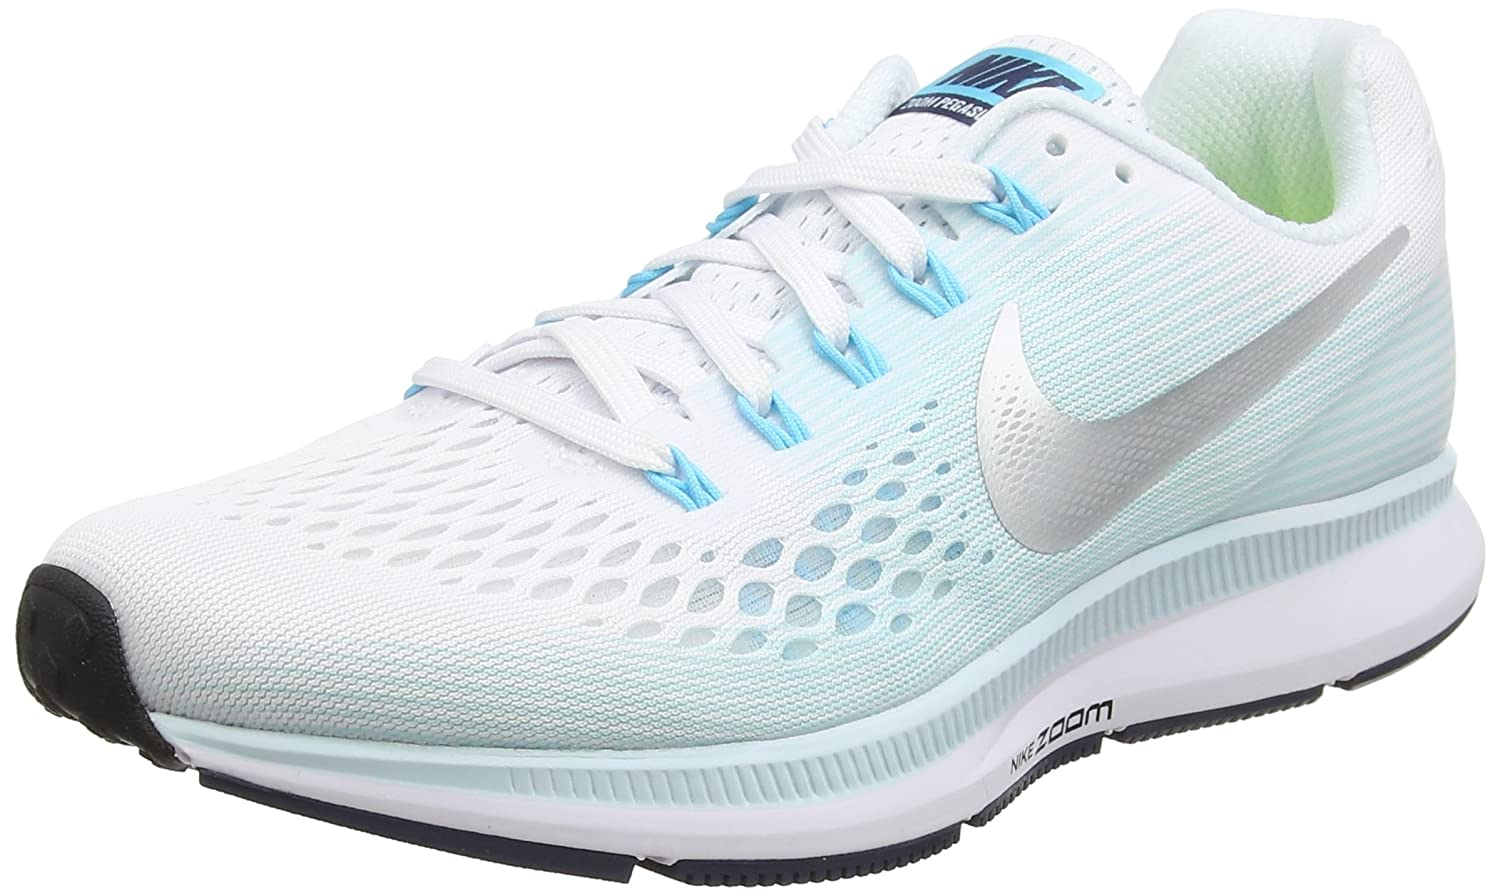 NIKE Women's Air Zoom Pegasus 34 Running Shoe B06X9D63SM 9 B(M) US|White/Metallic Silver-glacier Blue